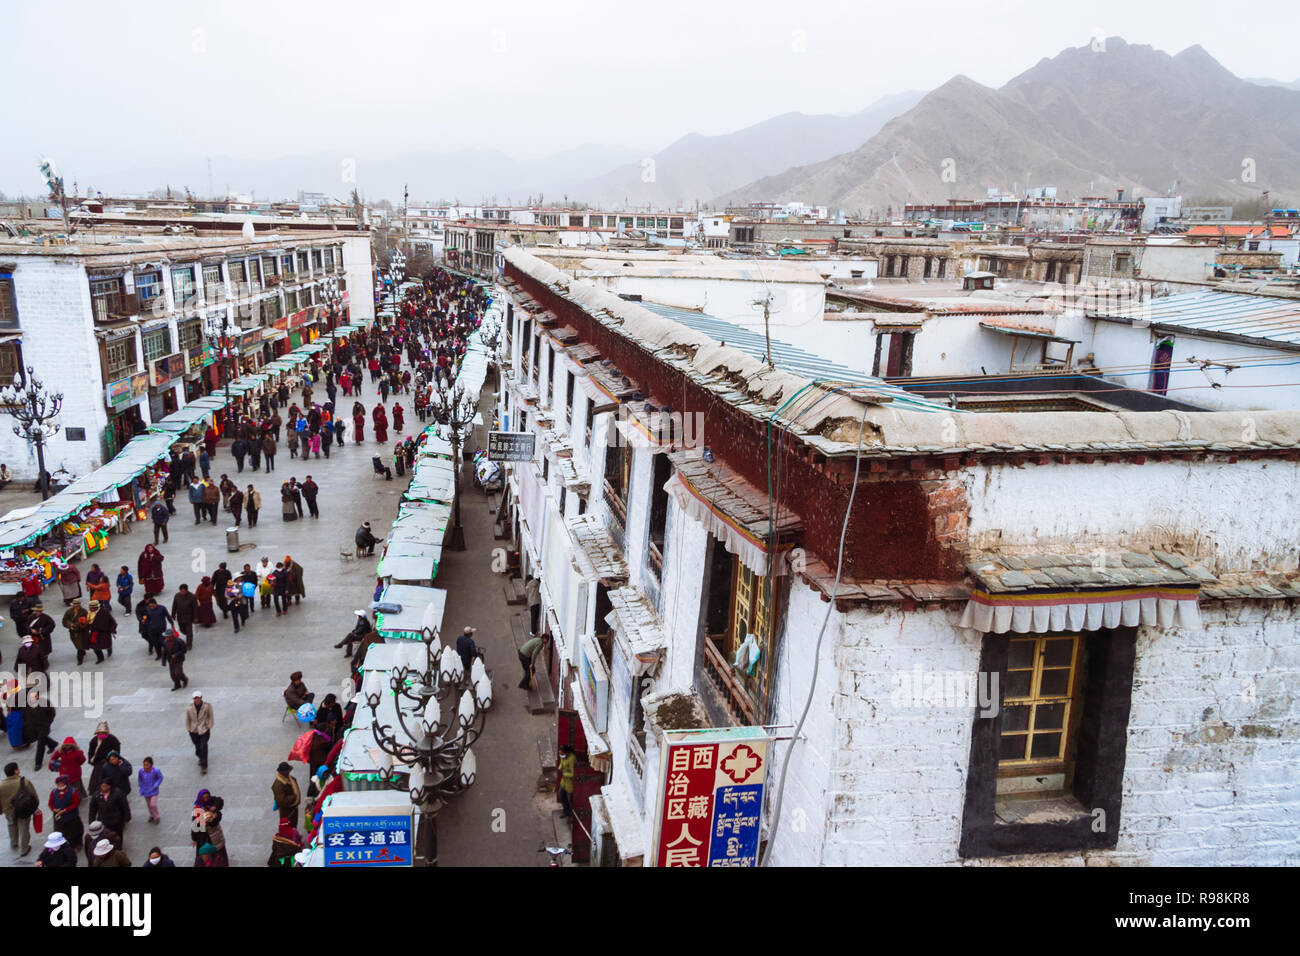 Lhasa, Tibet Autonomous Region, China : High angle view of people walking along one of the main streets of the Barkhor district. - Stock Image